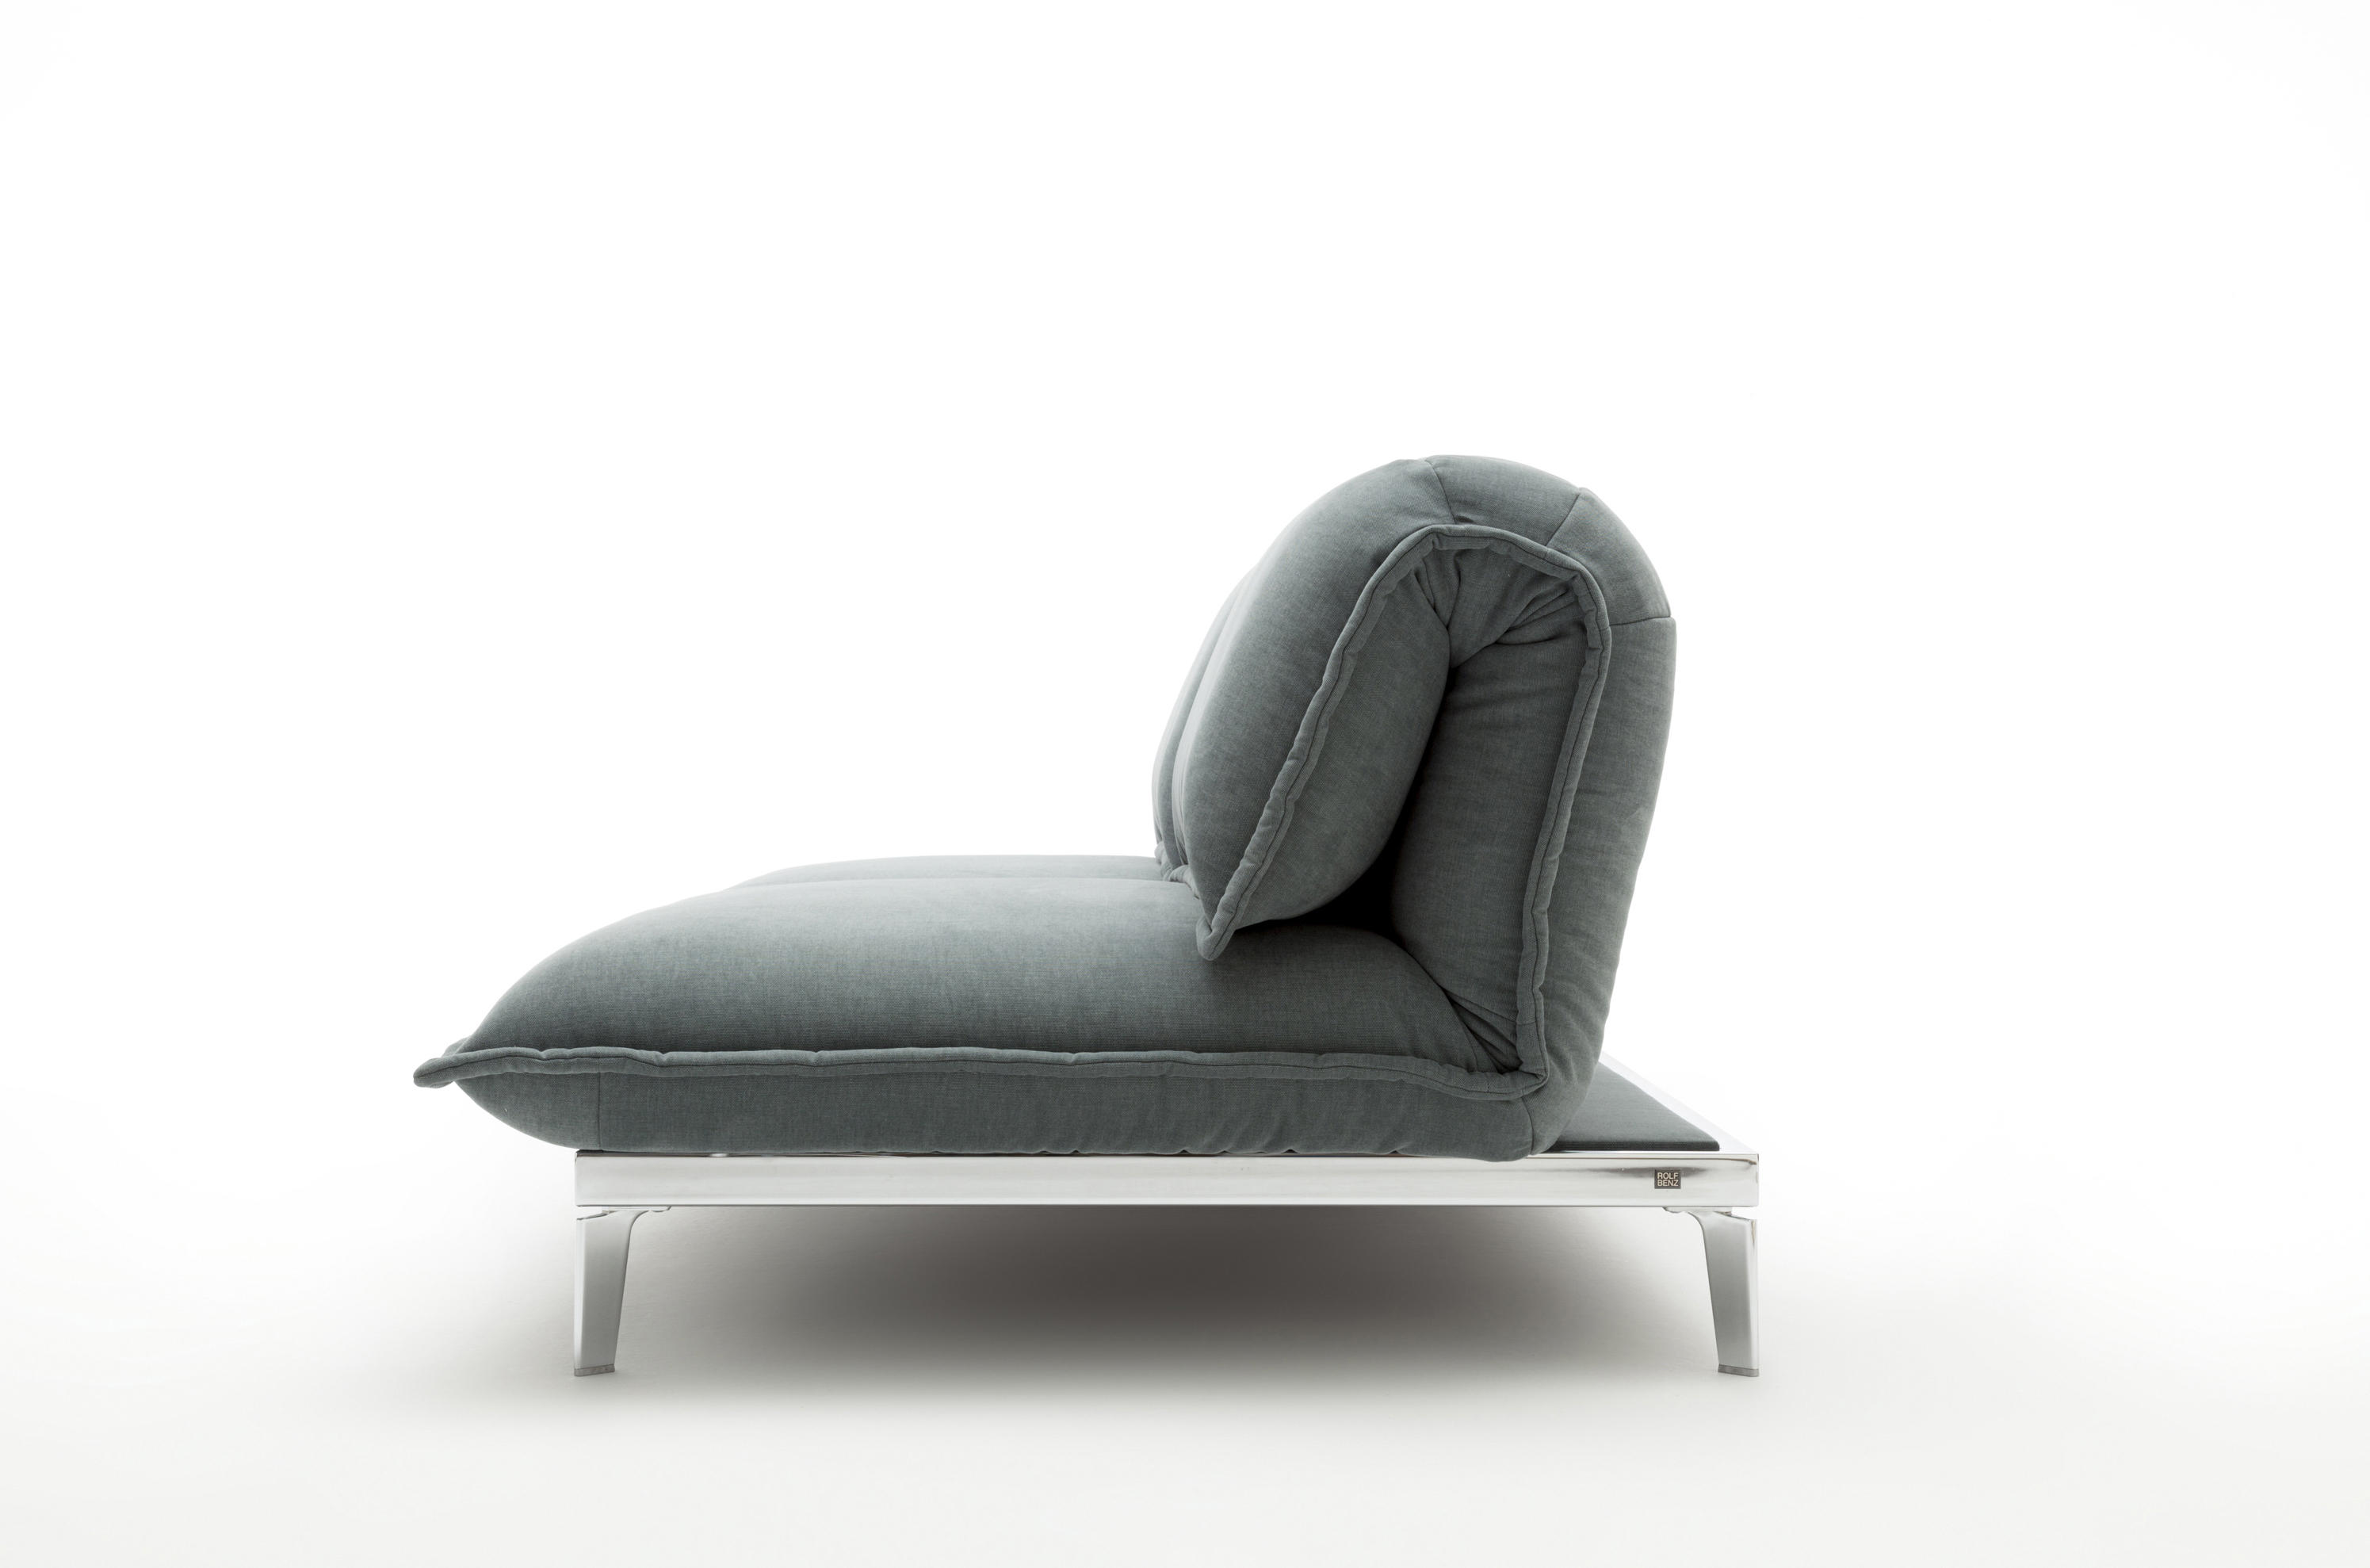 ROLF BENZ NOVA - Reclining sofas from Rolf Benz | Architonic